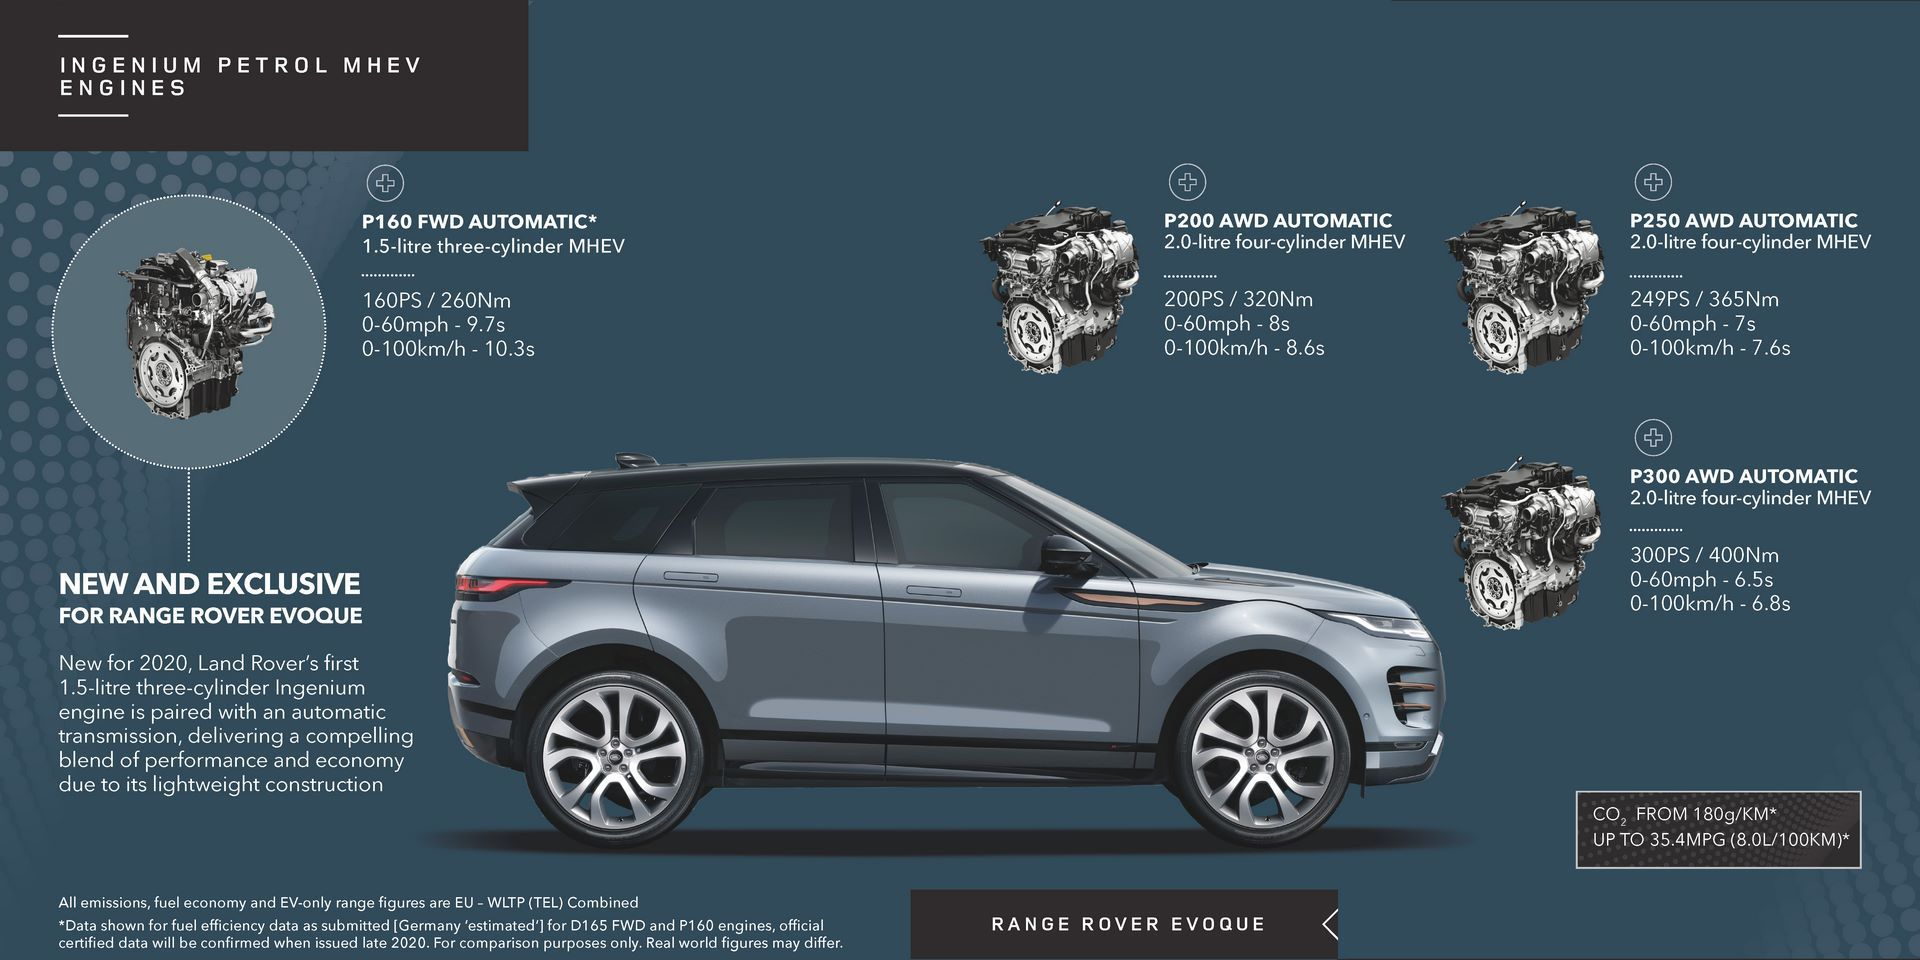 Range-Rover-Evoque-and-Land-Rover-Discovery-Sport-MHEV-diesel-27